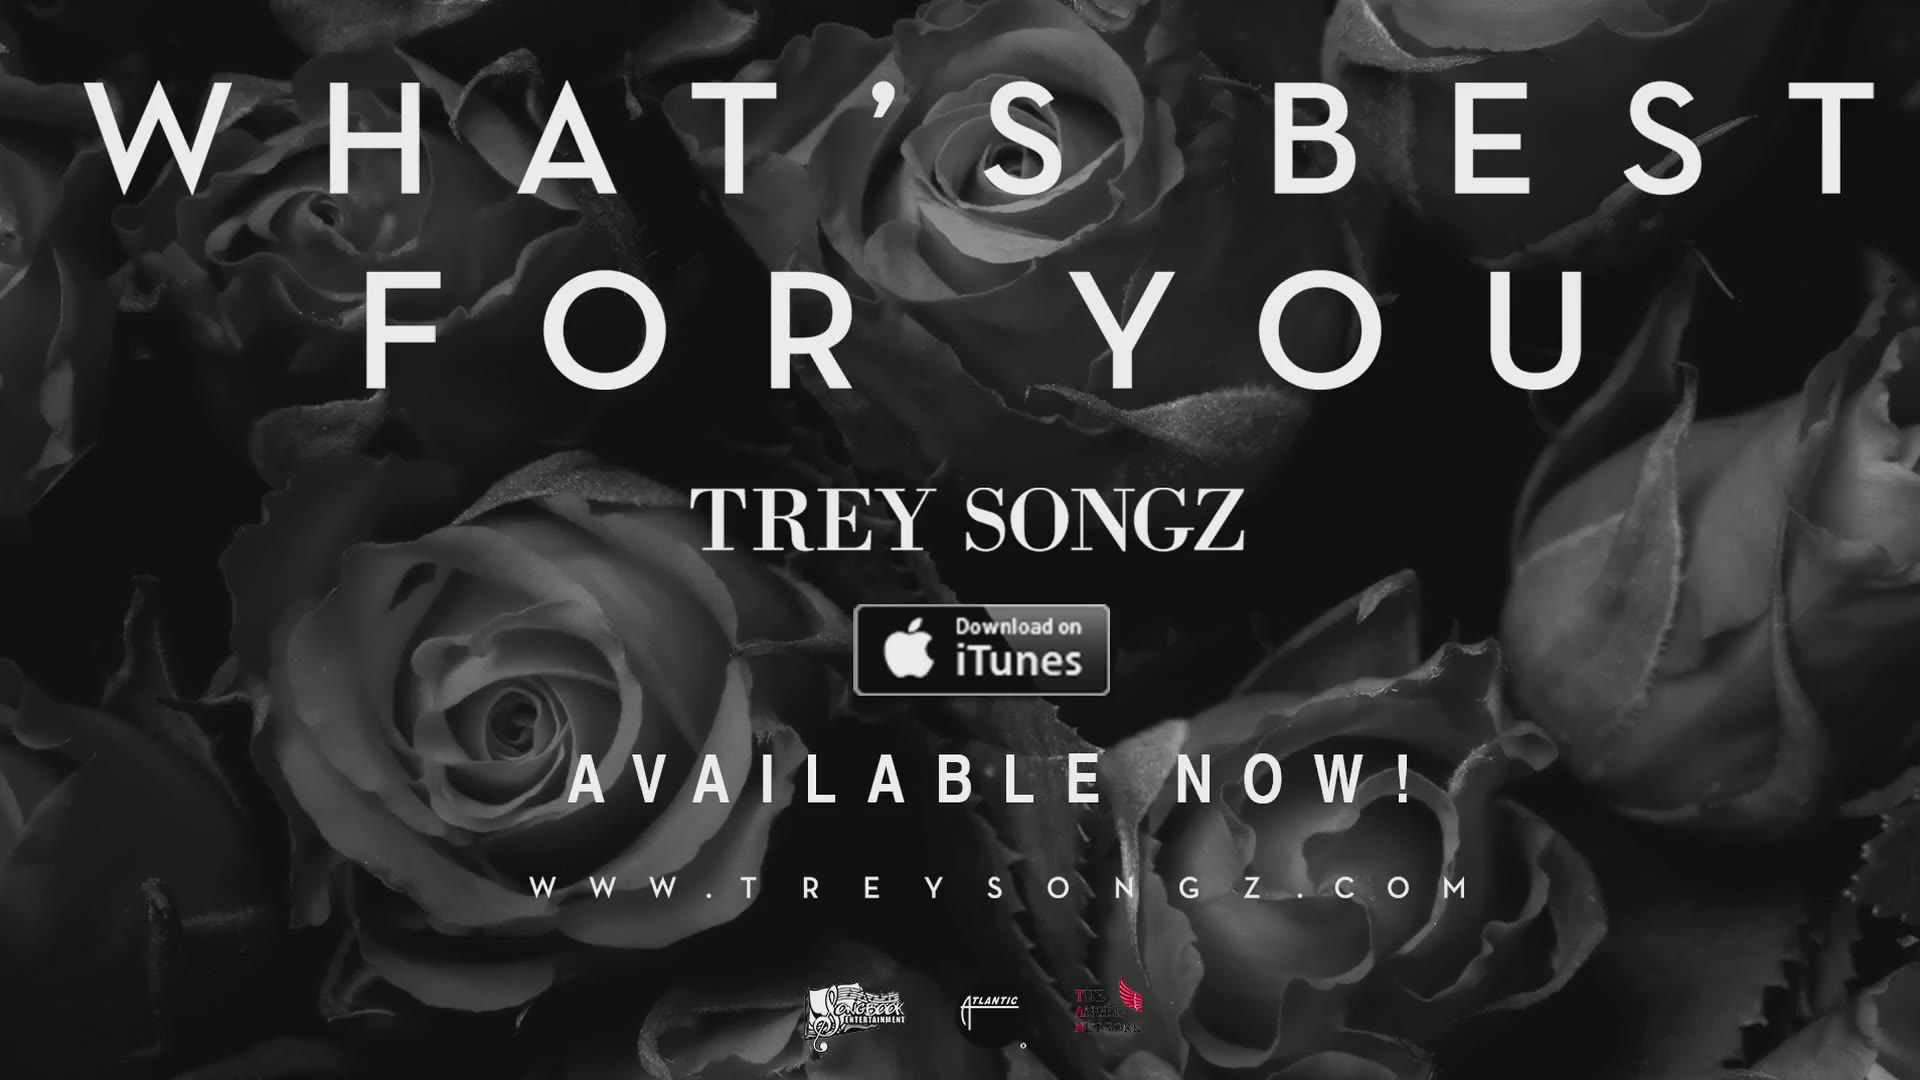 Trey-Songz-Whats-Best-For-You